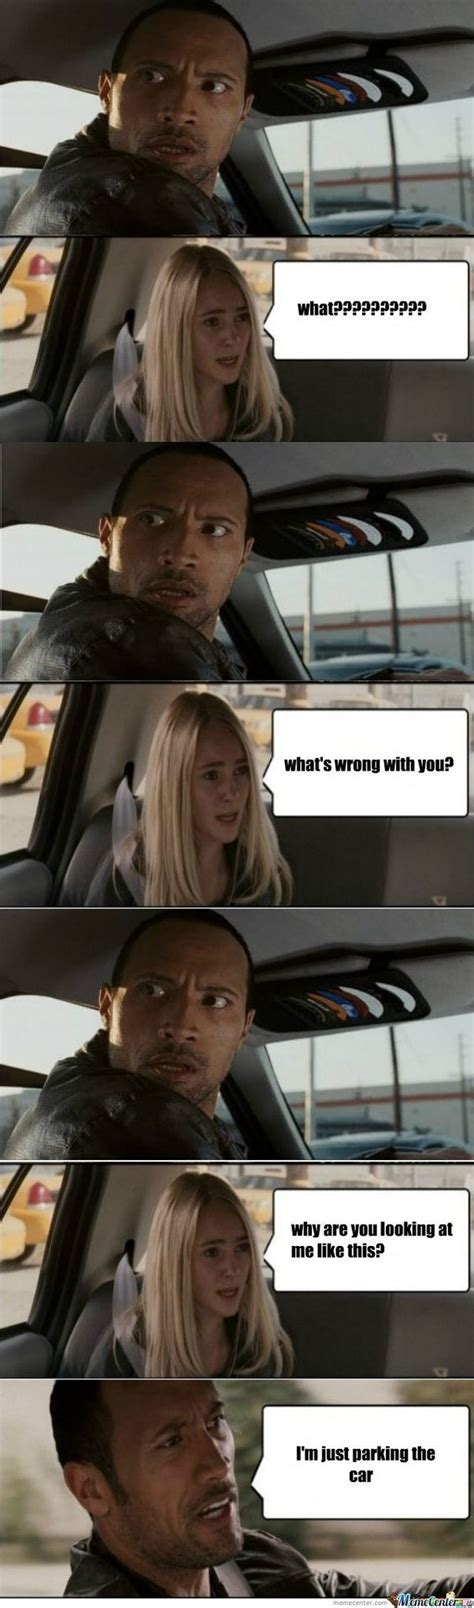 Dwayne Johnson Car Meme - what are some of the best dwayne johnson memes quora